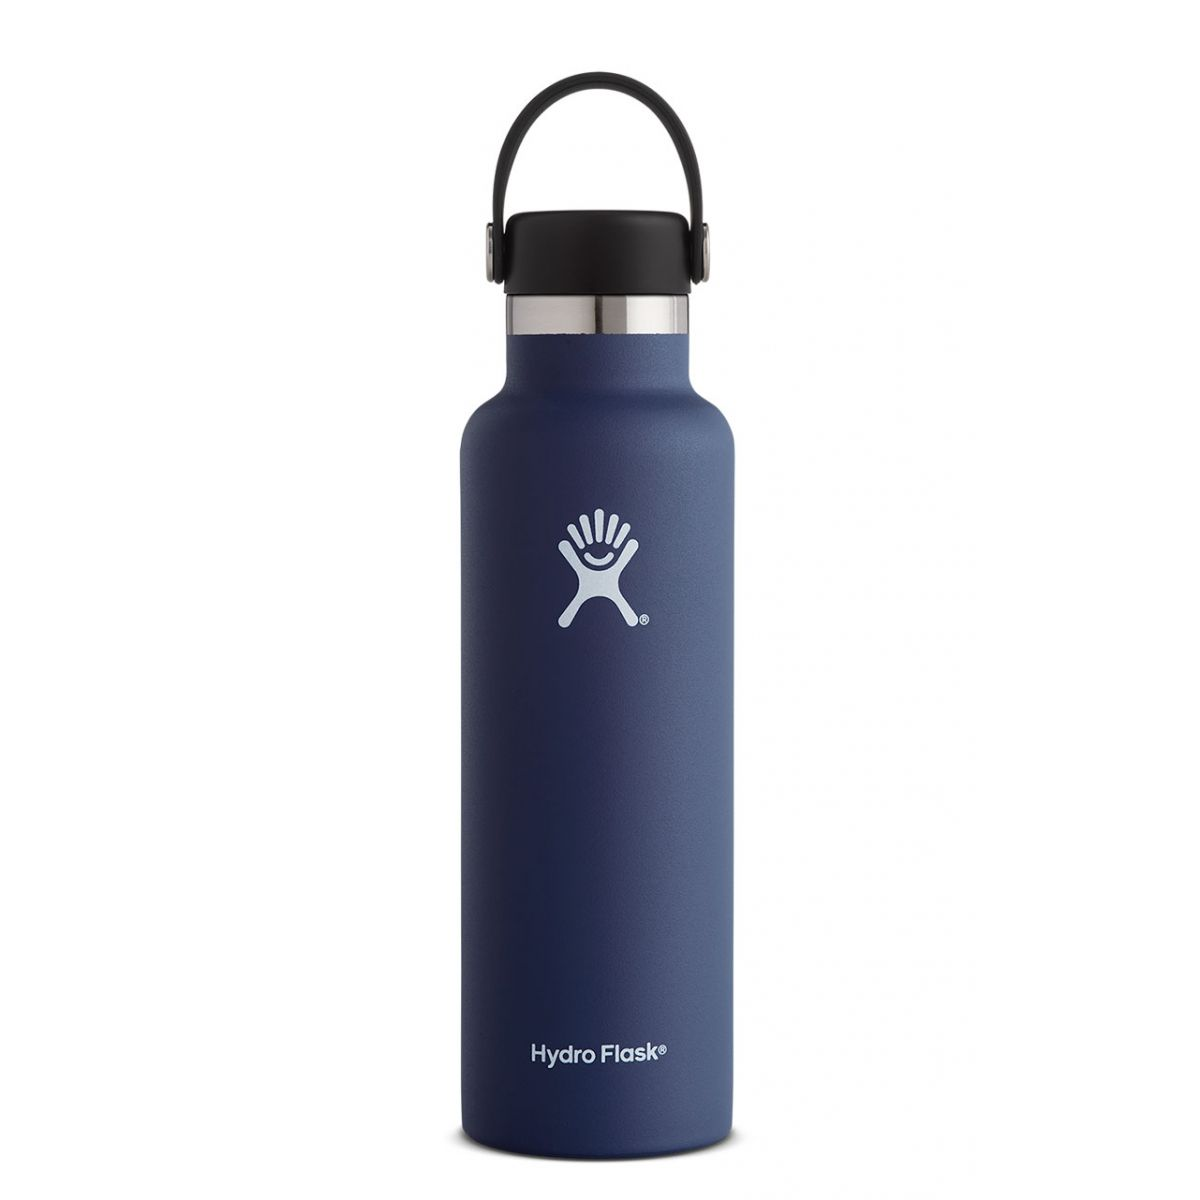 hydroflask stainless steel water bottle 21 oz in cobalt